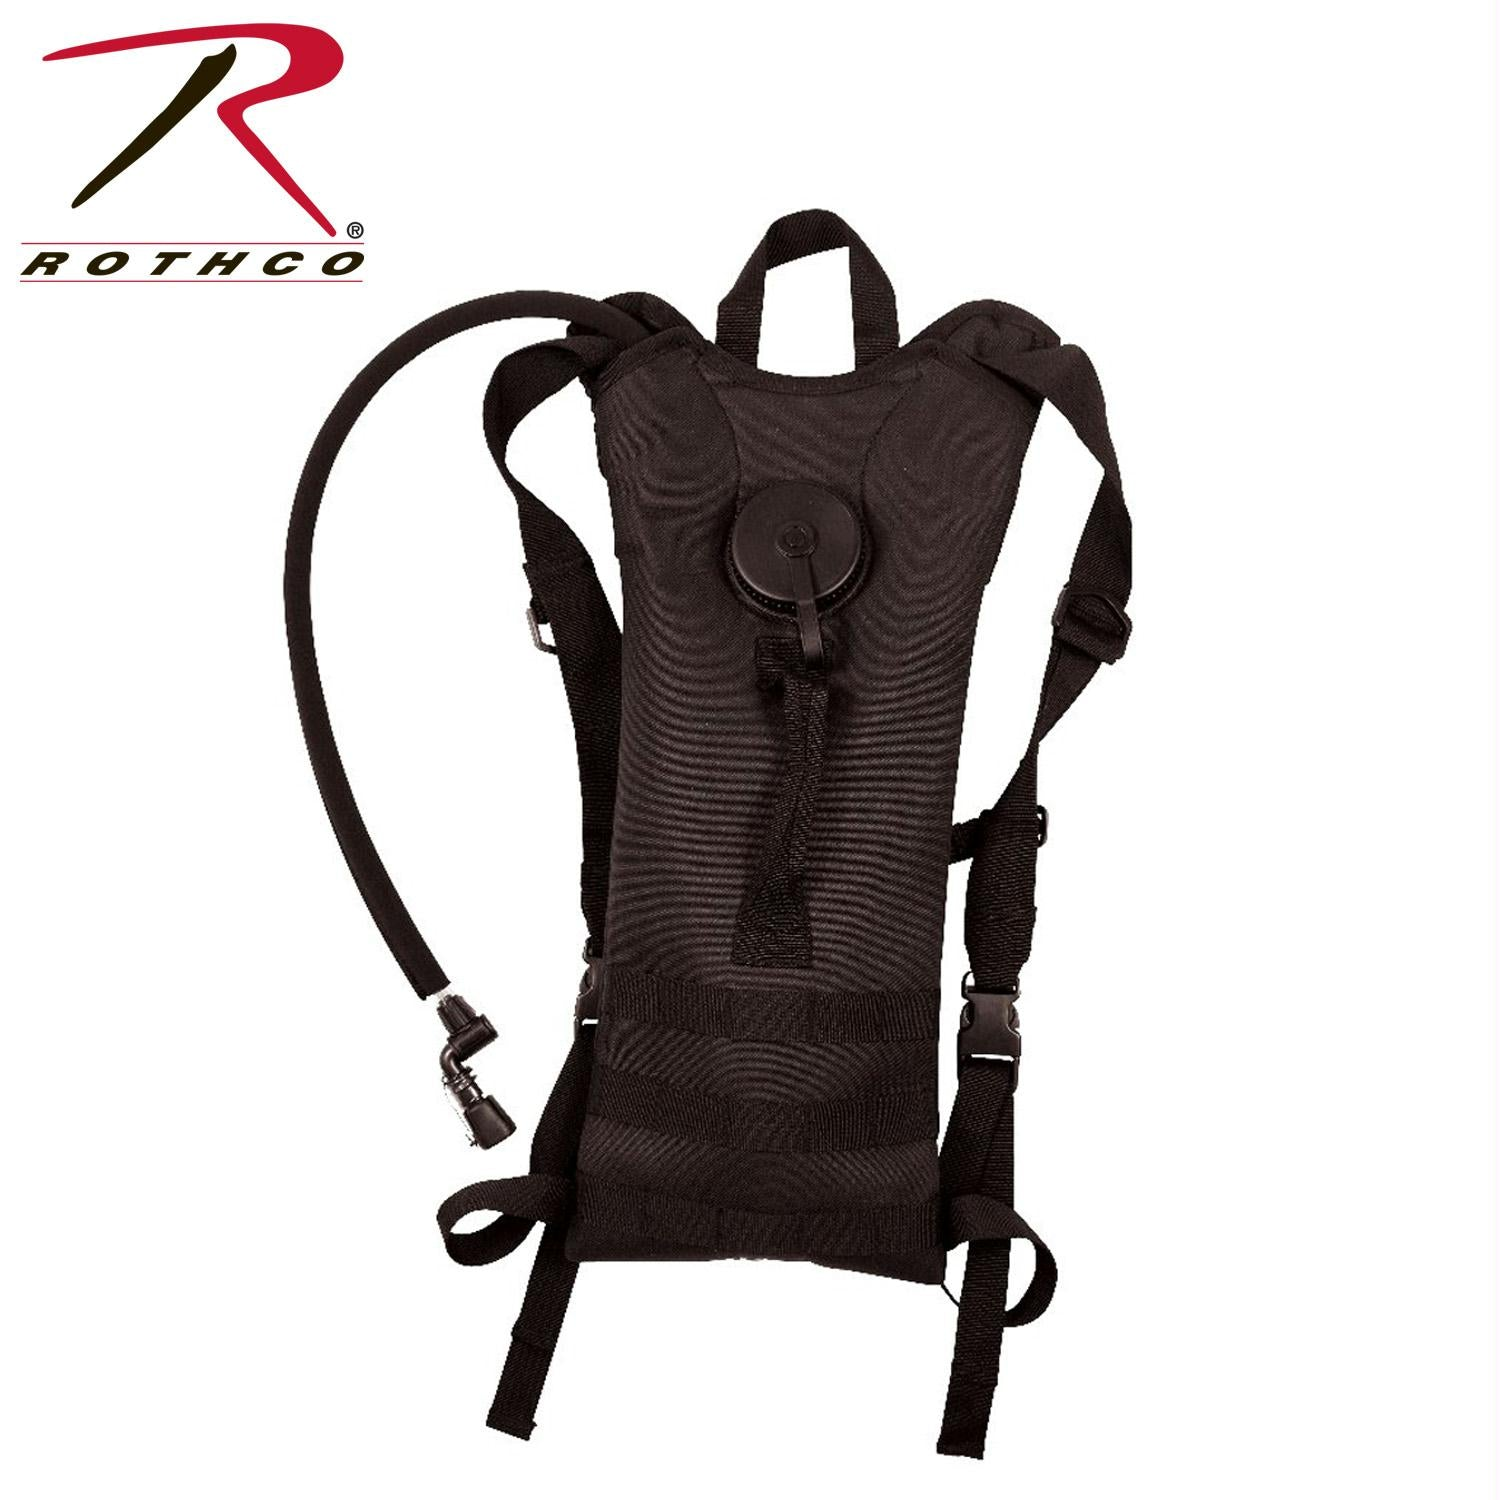 Rothco MOLLE 3 Liter Backstrap Hydration System - Black